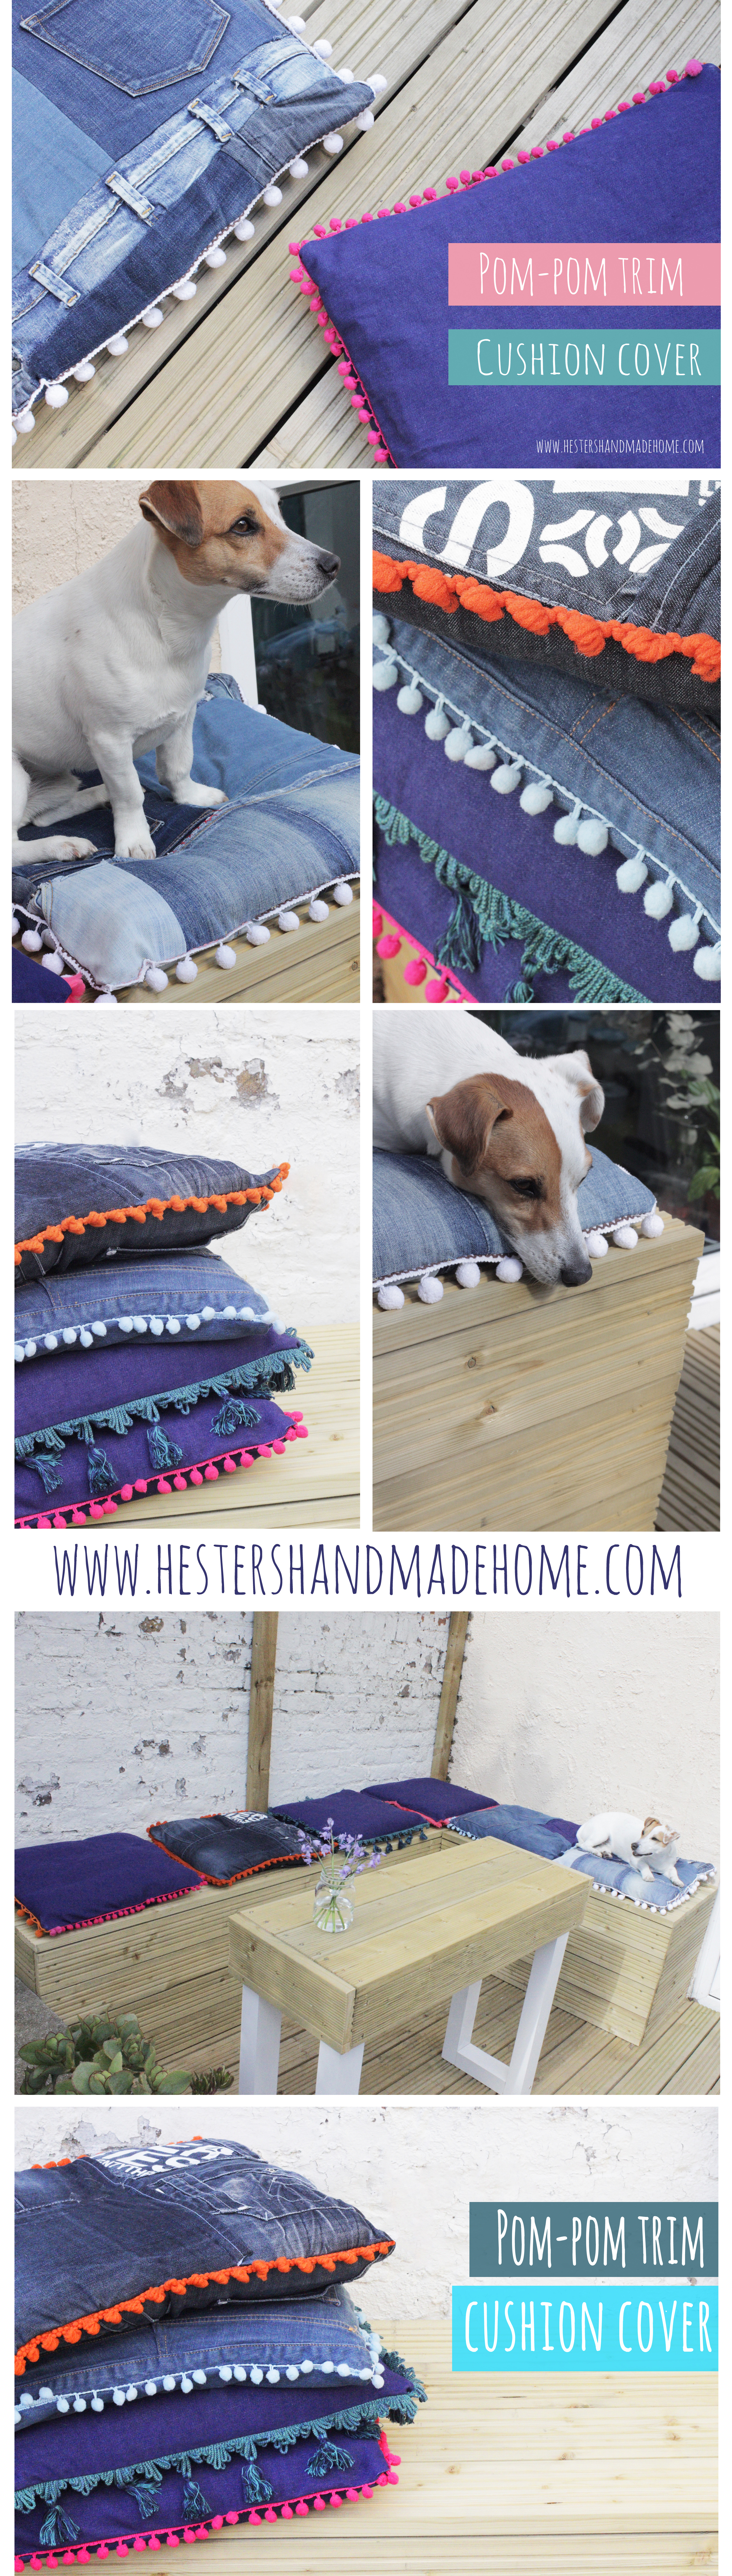 Pompom trim cushion covers, made from denim and old jeans. Tutorial by Hester's Handmade Home